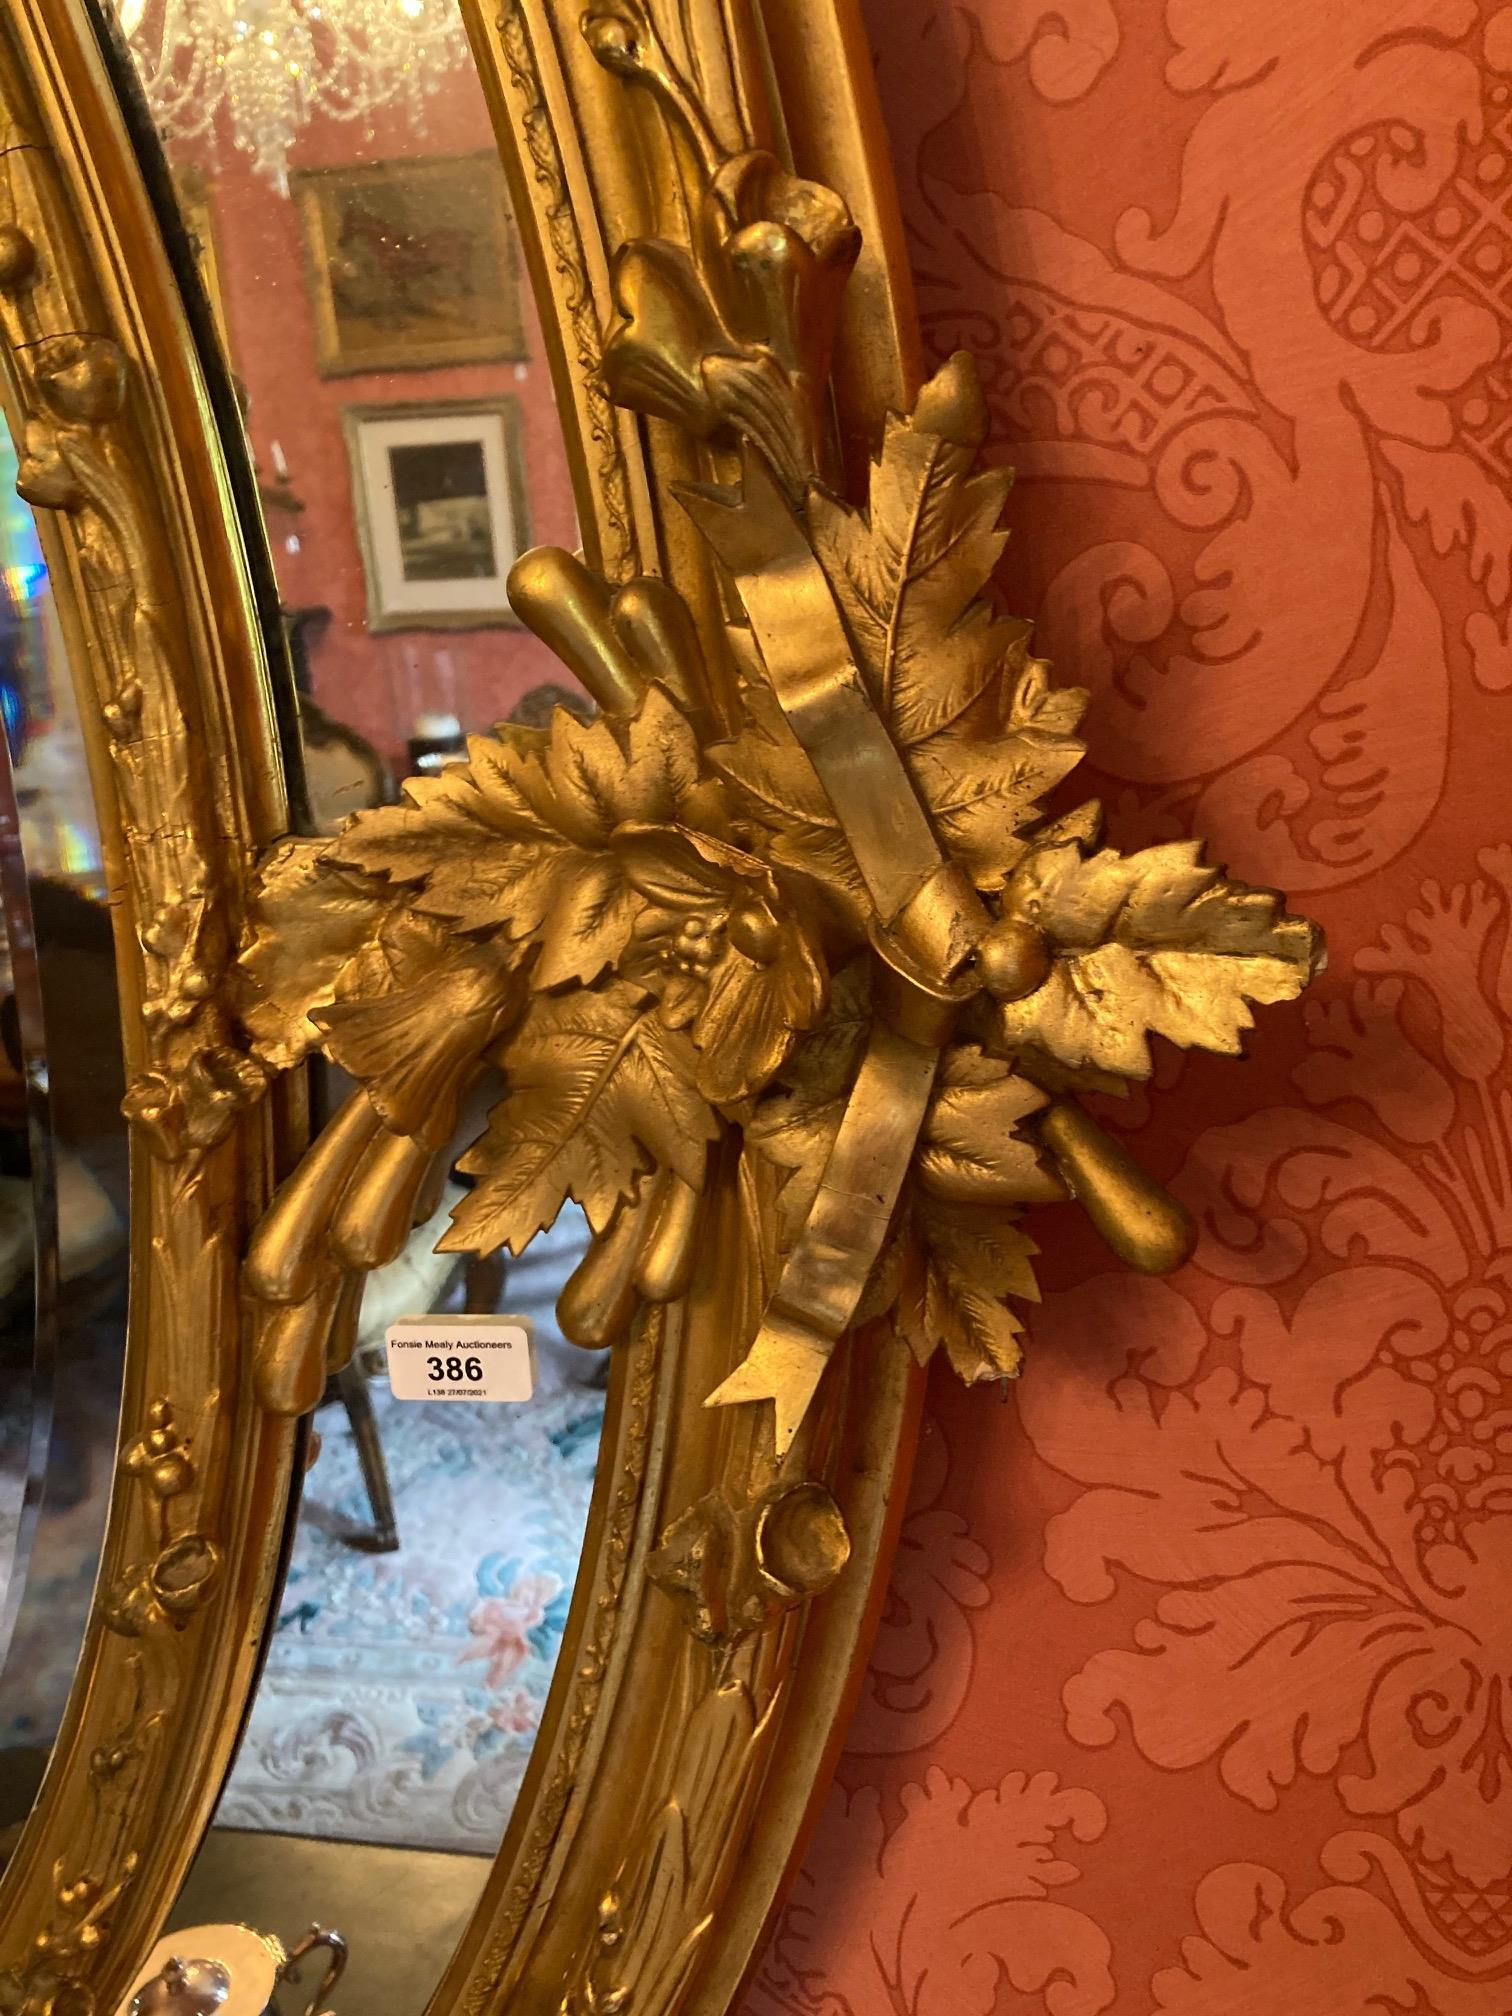 A superb large 19th Century oval gilt Wall Mirror, the ornate crest with scrolling foliage and - Image 2 of 7